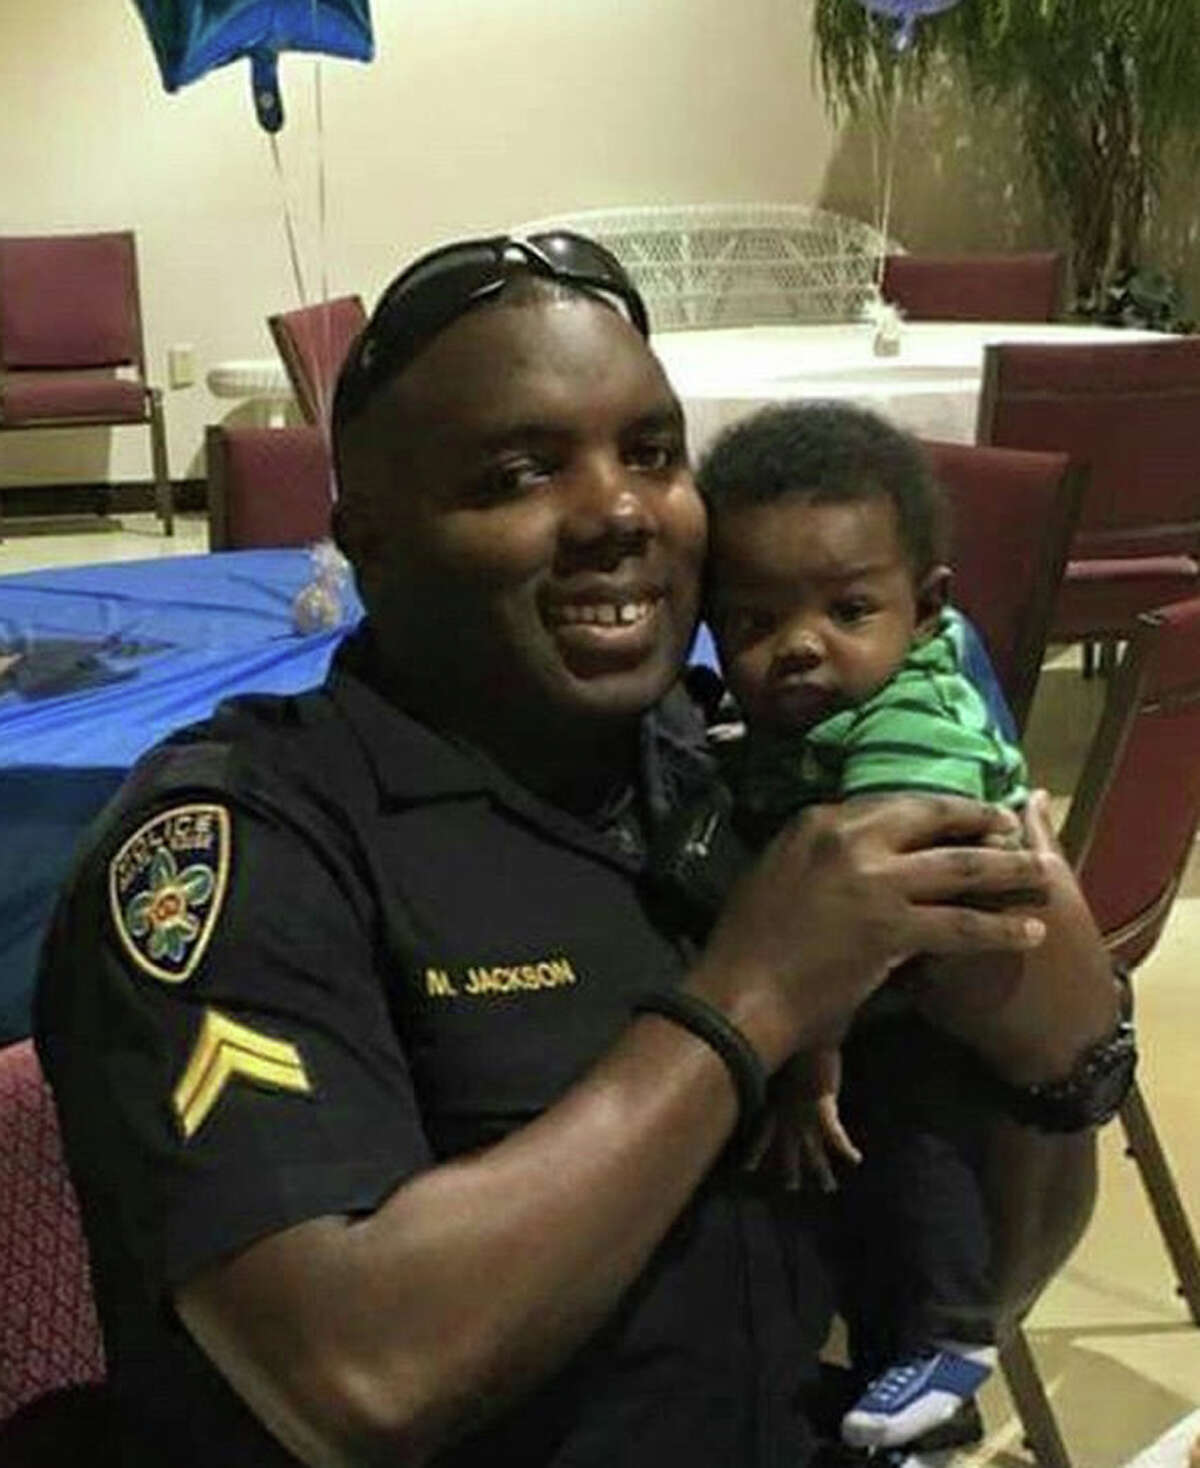 In this 2016 photo provided by Trenisha Jackson, her husband, Baton Rouge Police Officer Montrell Jackson, holds his son Mason at a Father's Day event for police officers in Baton Rouge, La. Montrell Jackson and two other Baton Rouge law enforcement officers investigating a report of a man with an assault rifle were killed Sunday, less than two weeks after a black man was fatally shot by police here in a confrontation that sparked nightly protests that reverberated nationwide. (Courtesy of Trenisha Jackson via AP) ORG XMIT: NY112